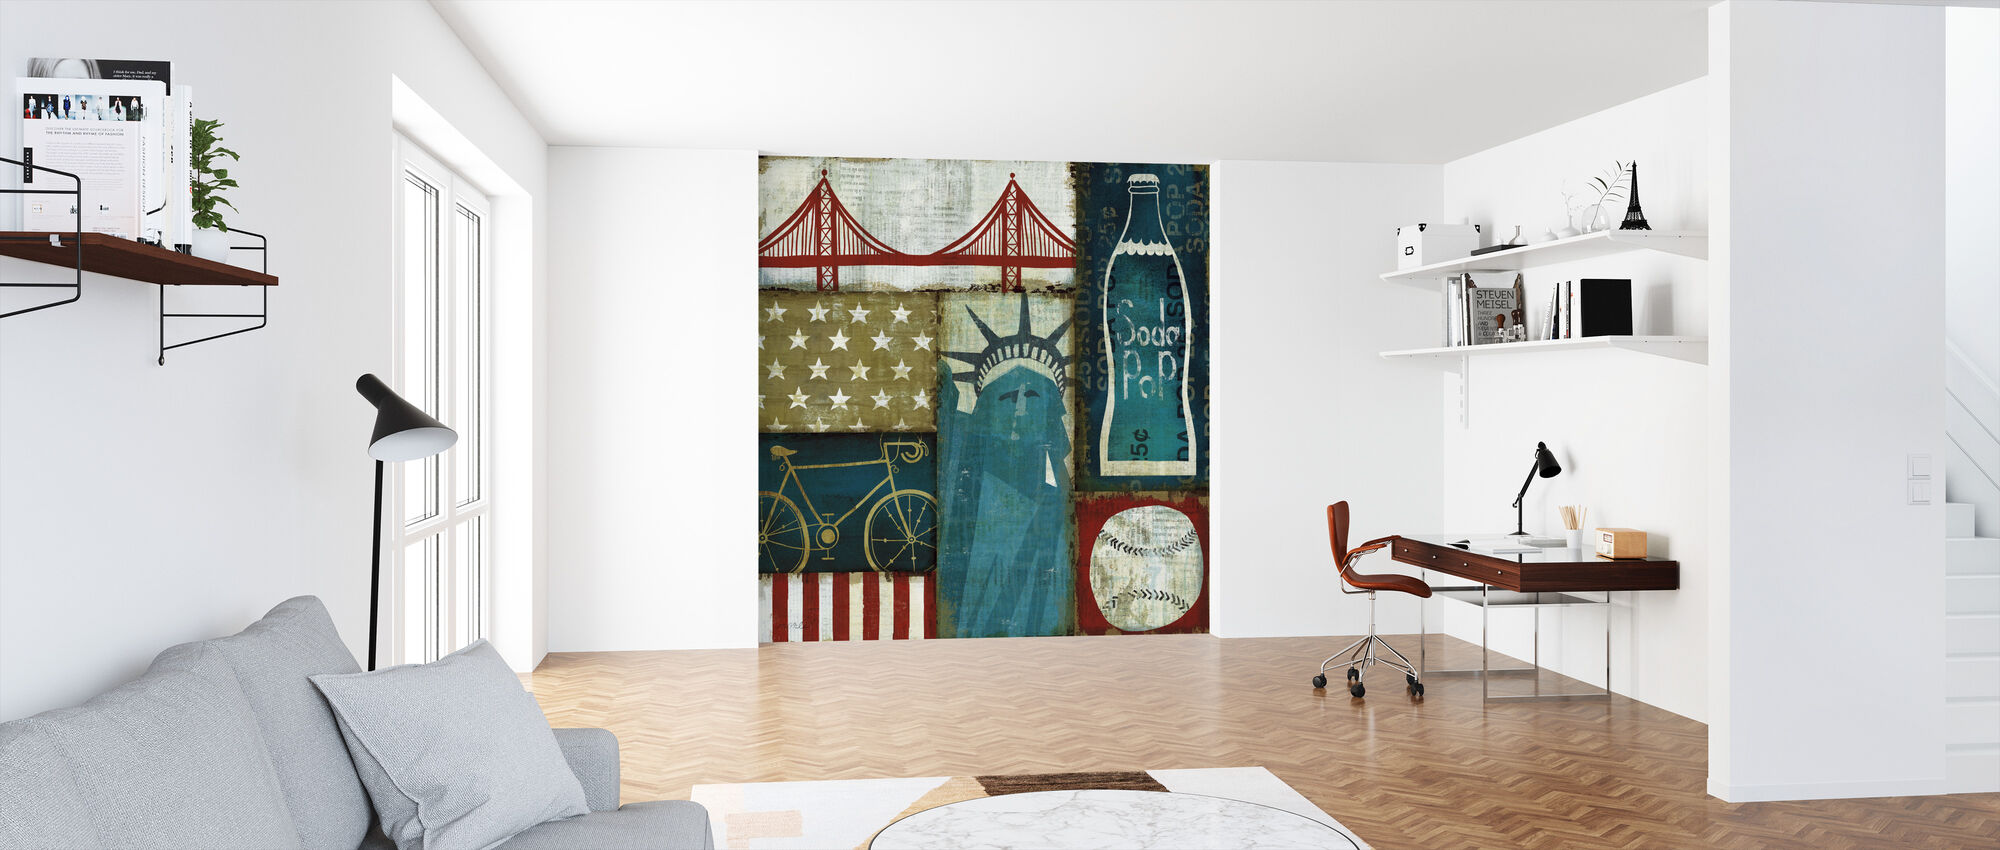 American Pop I - Wallpaper - Office